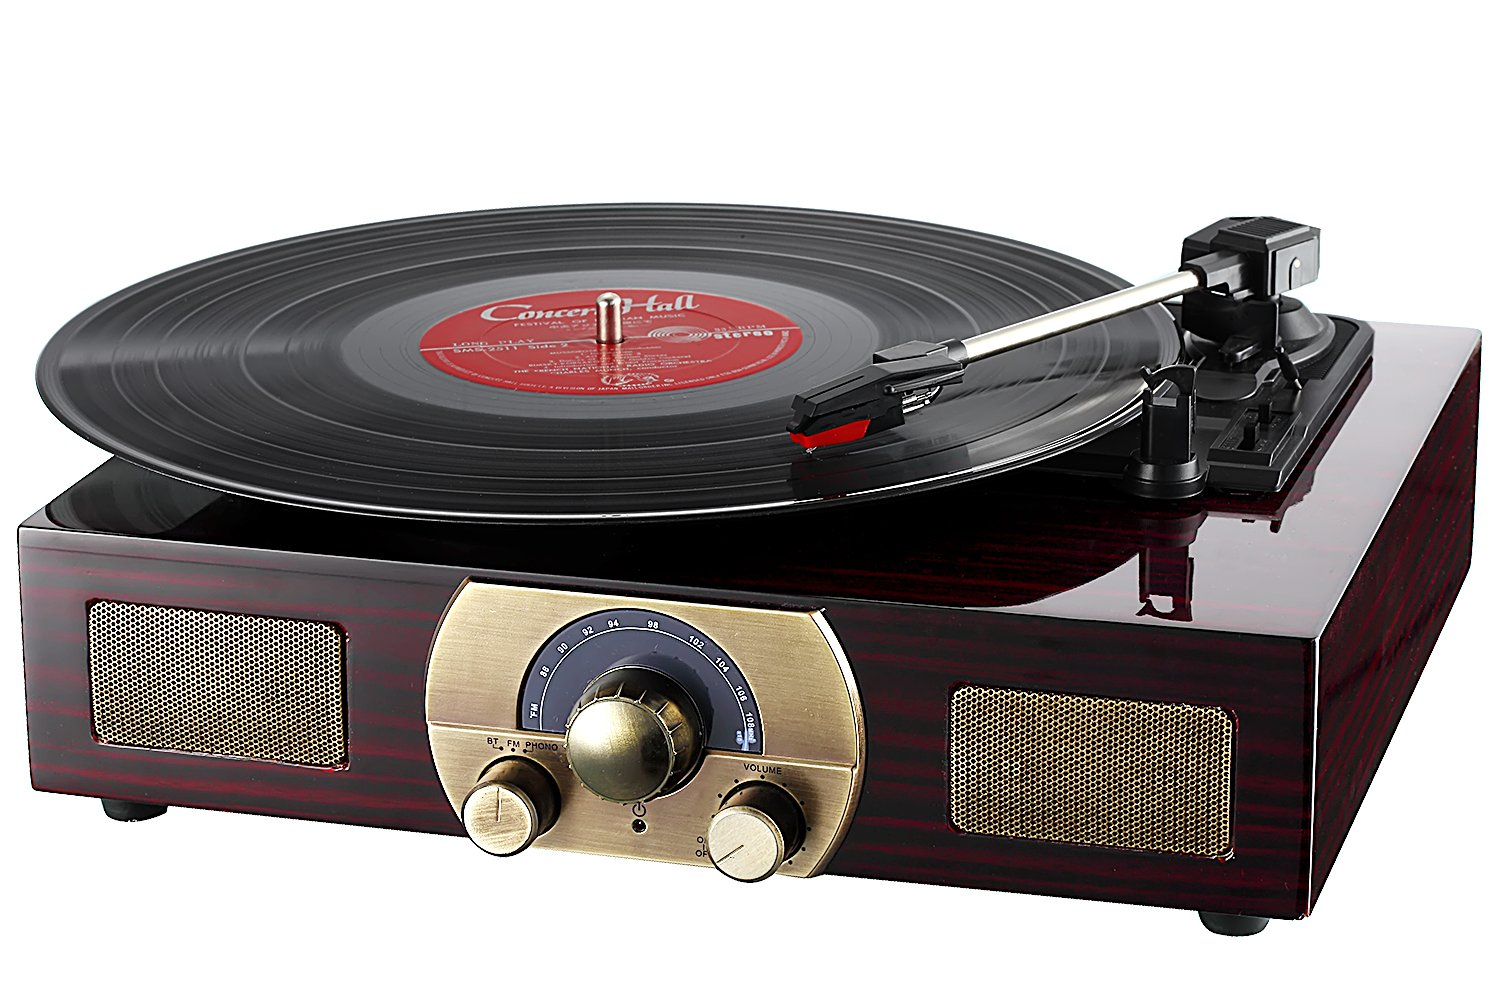 LuguLake Stereo 3-Speed Turntable with Built-In Bluetooth Speakers, Record Player, FM Radio and RCA Output, Vintage Phonograph with Retro Wooden Finish (TN01)